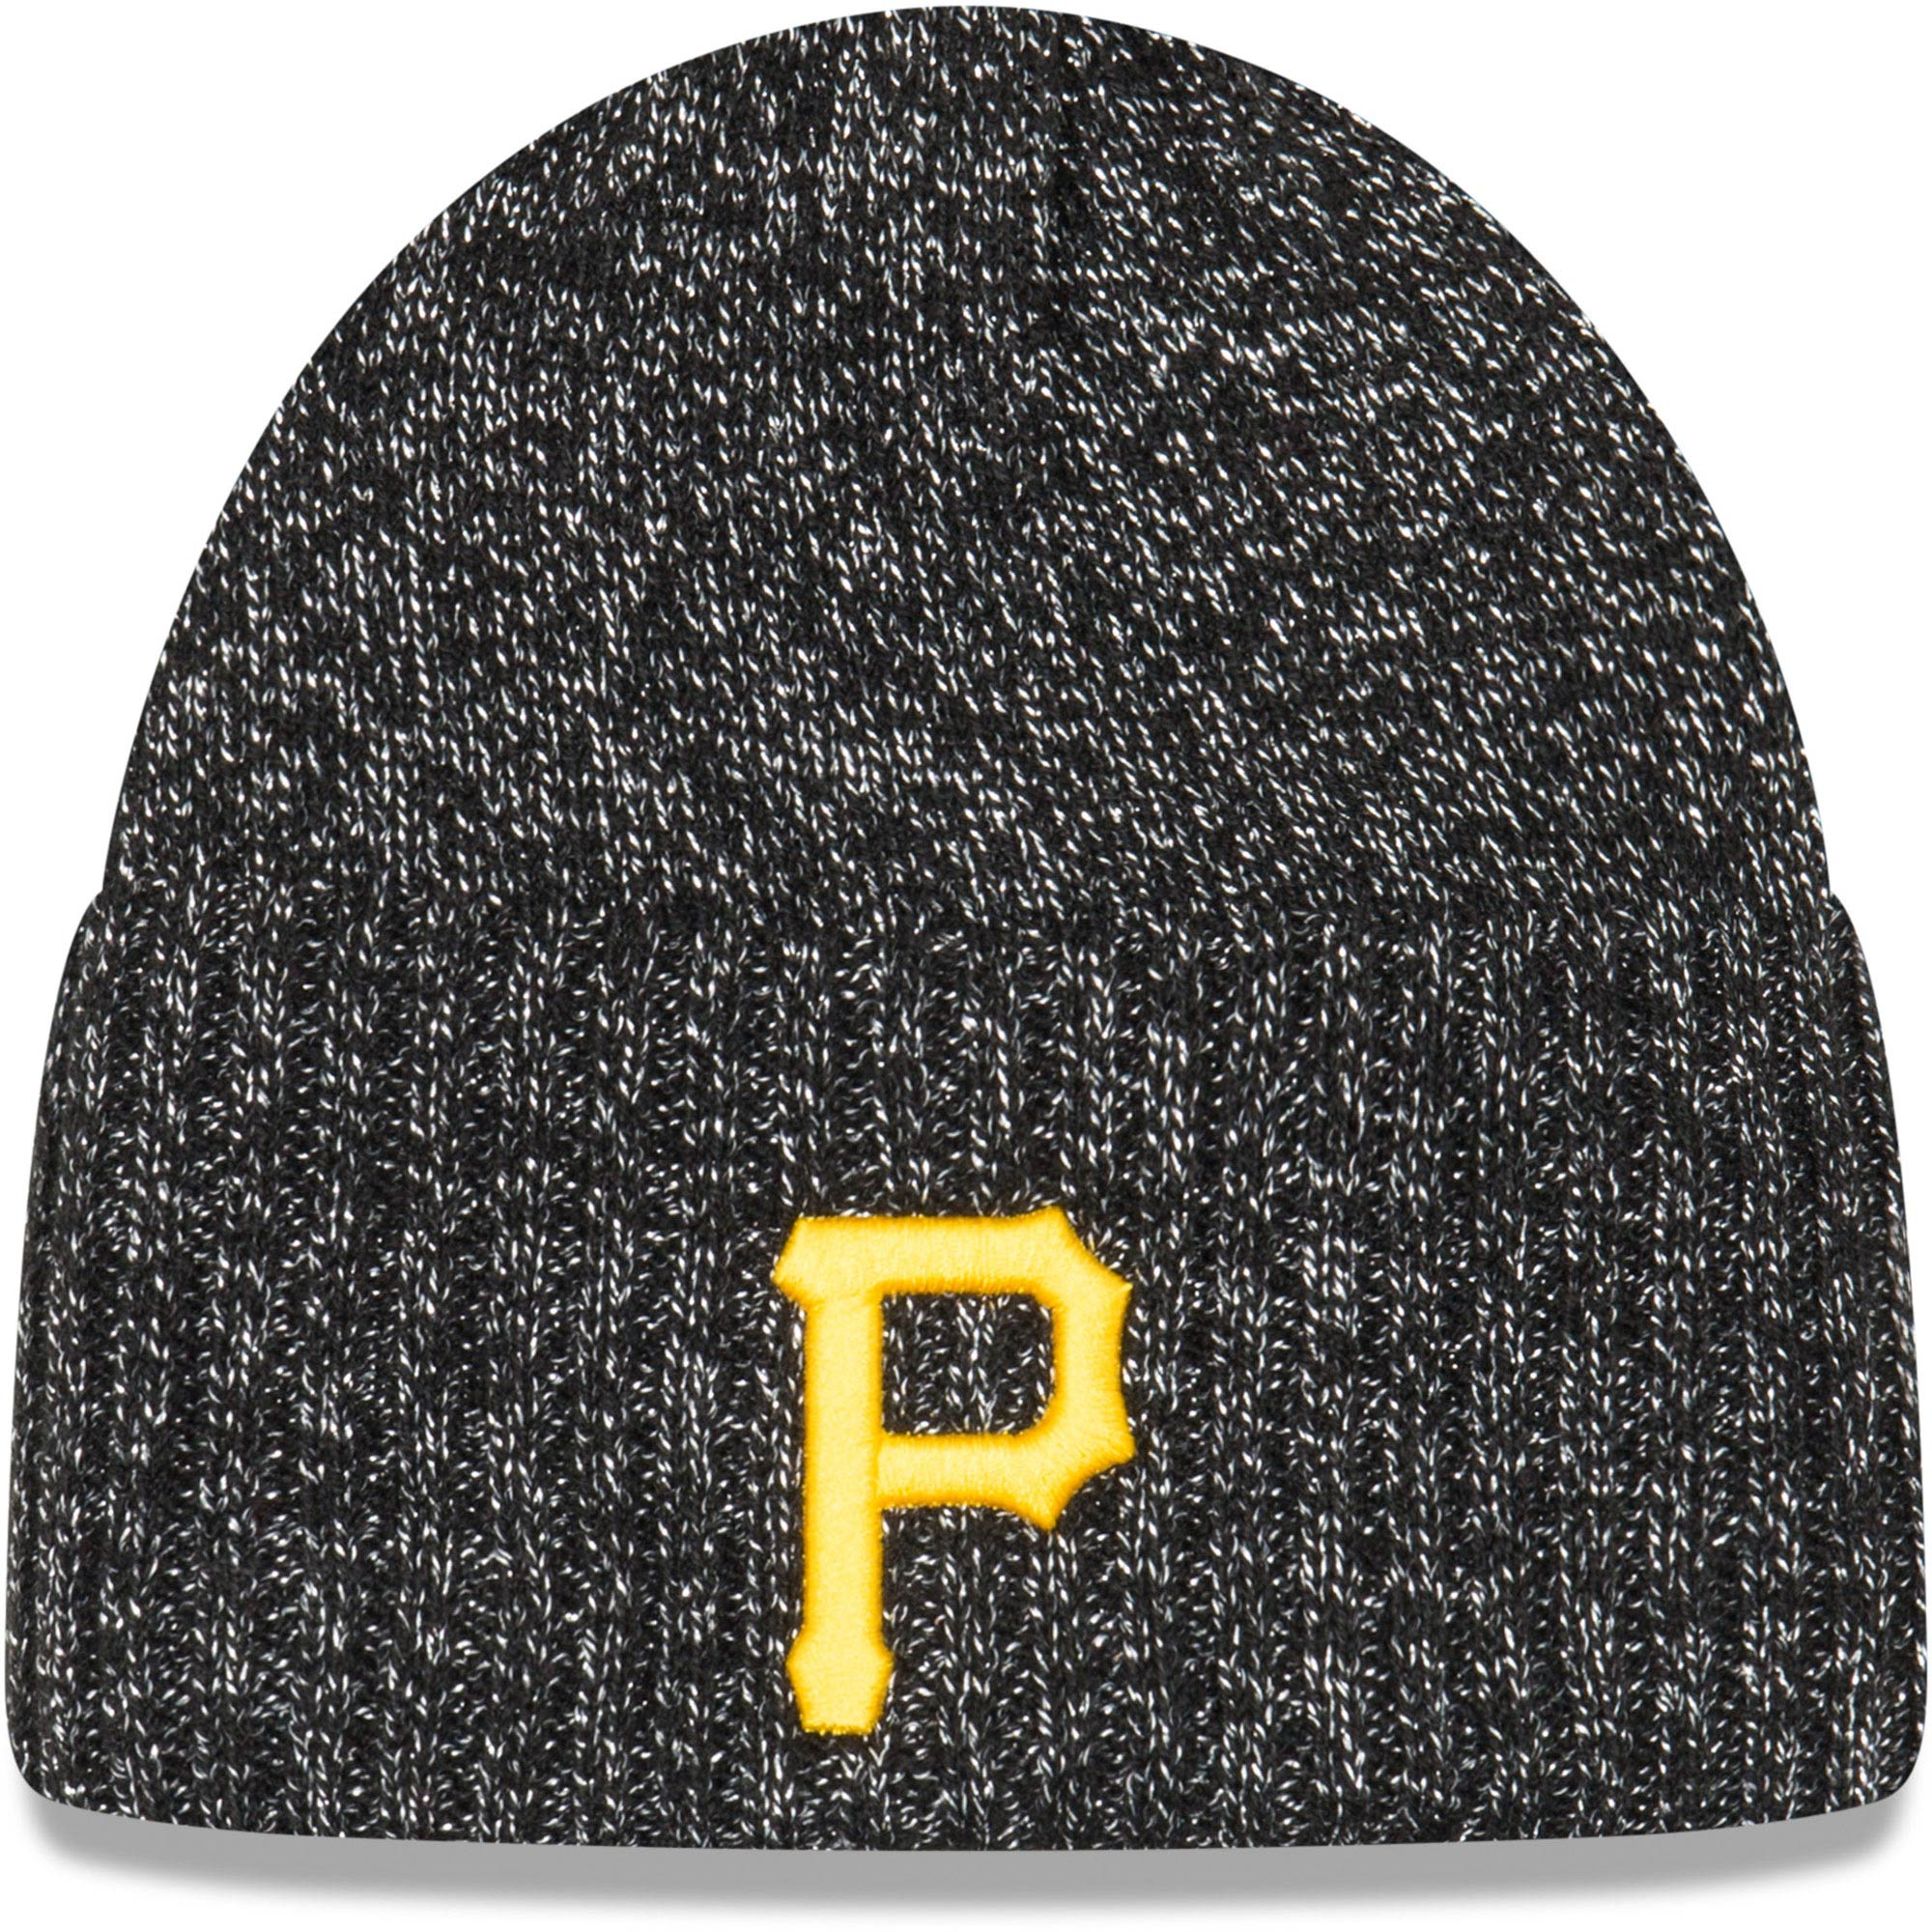 Pittsburgh Pirates New Era Women's Dazzle Knit Beanie - Black - OSFA